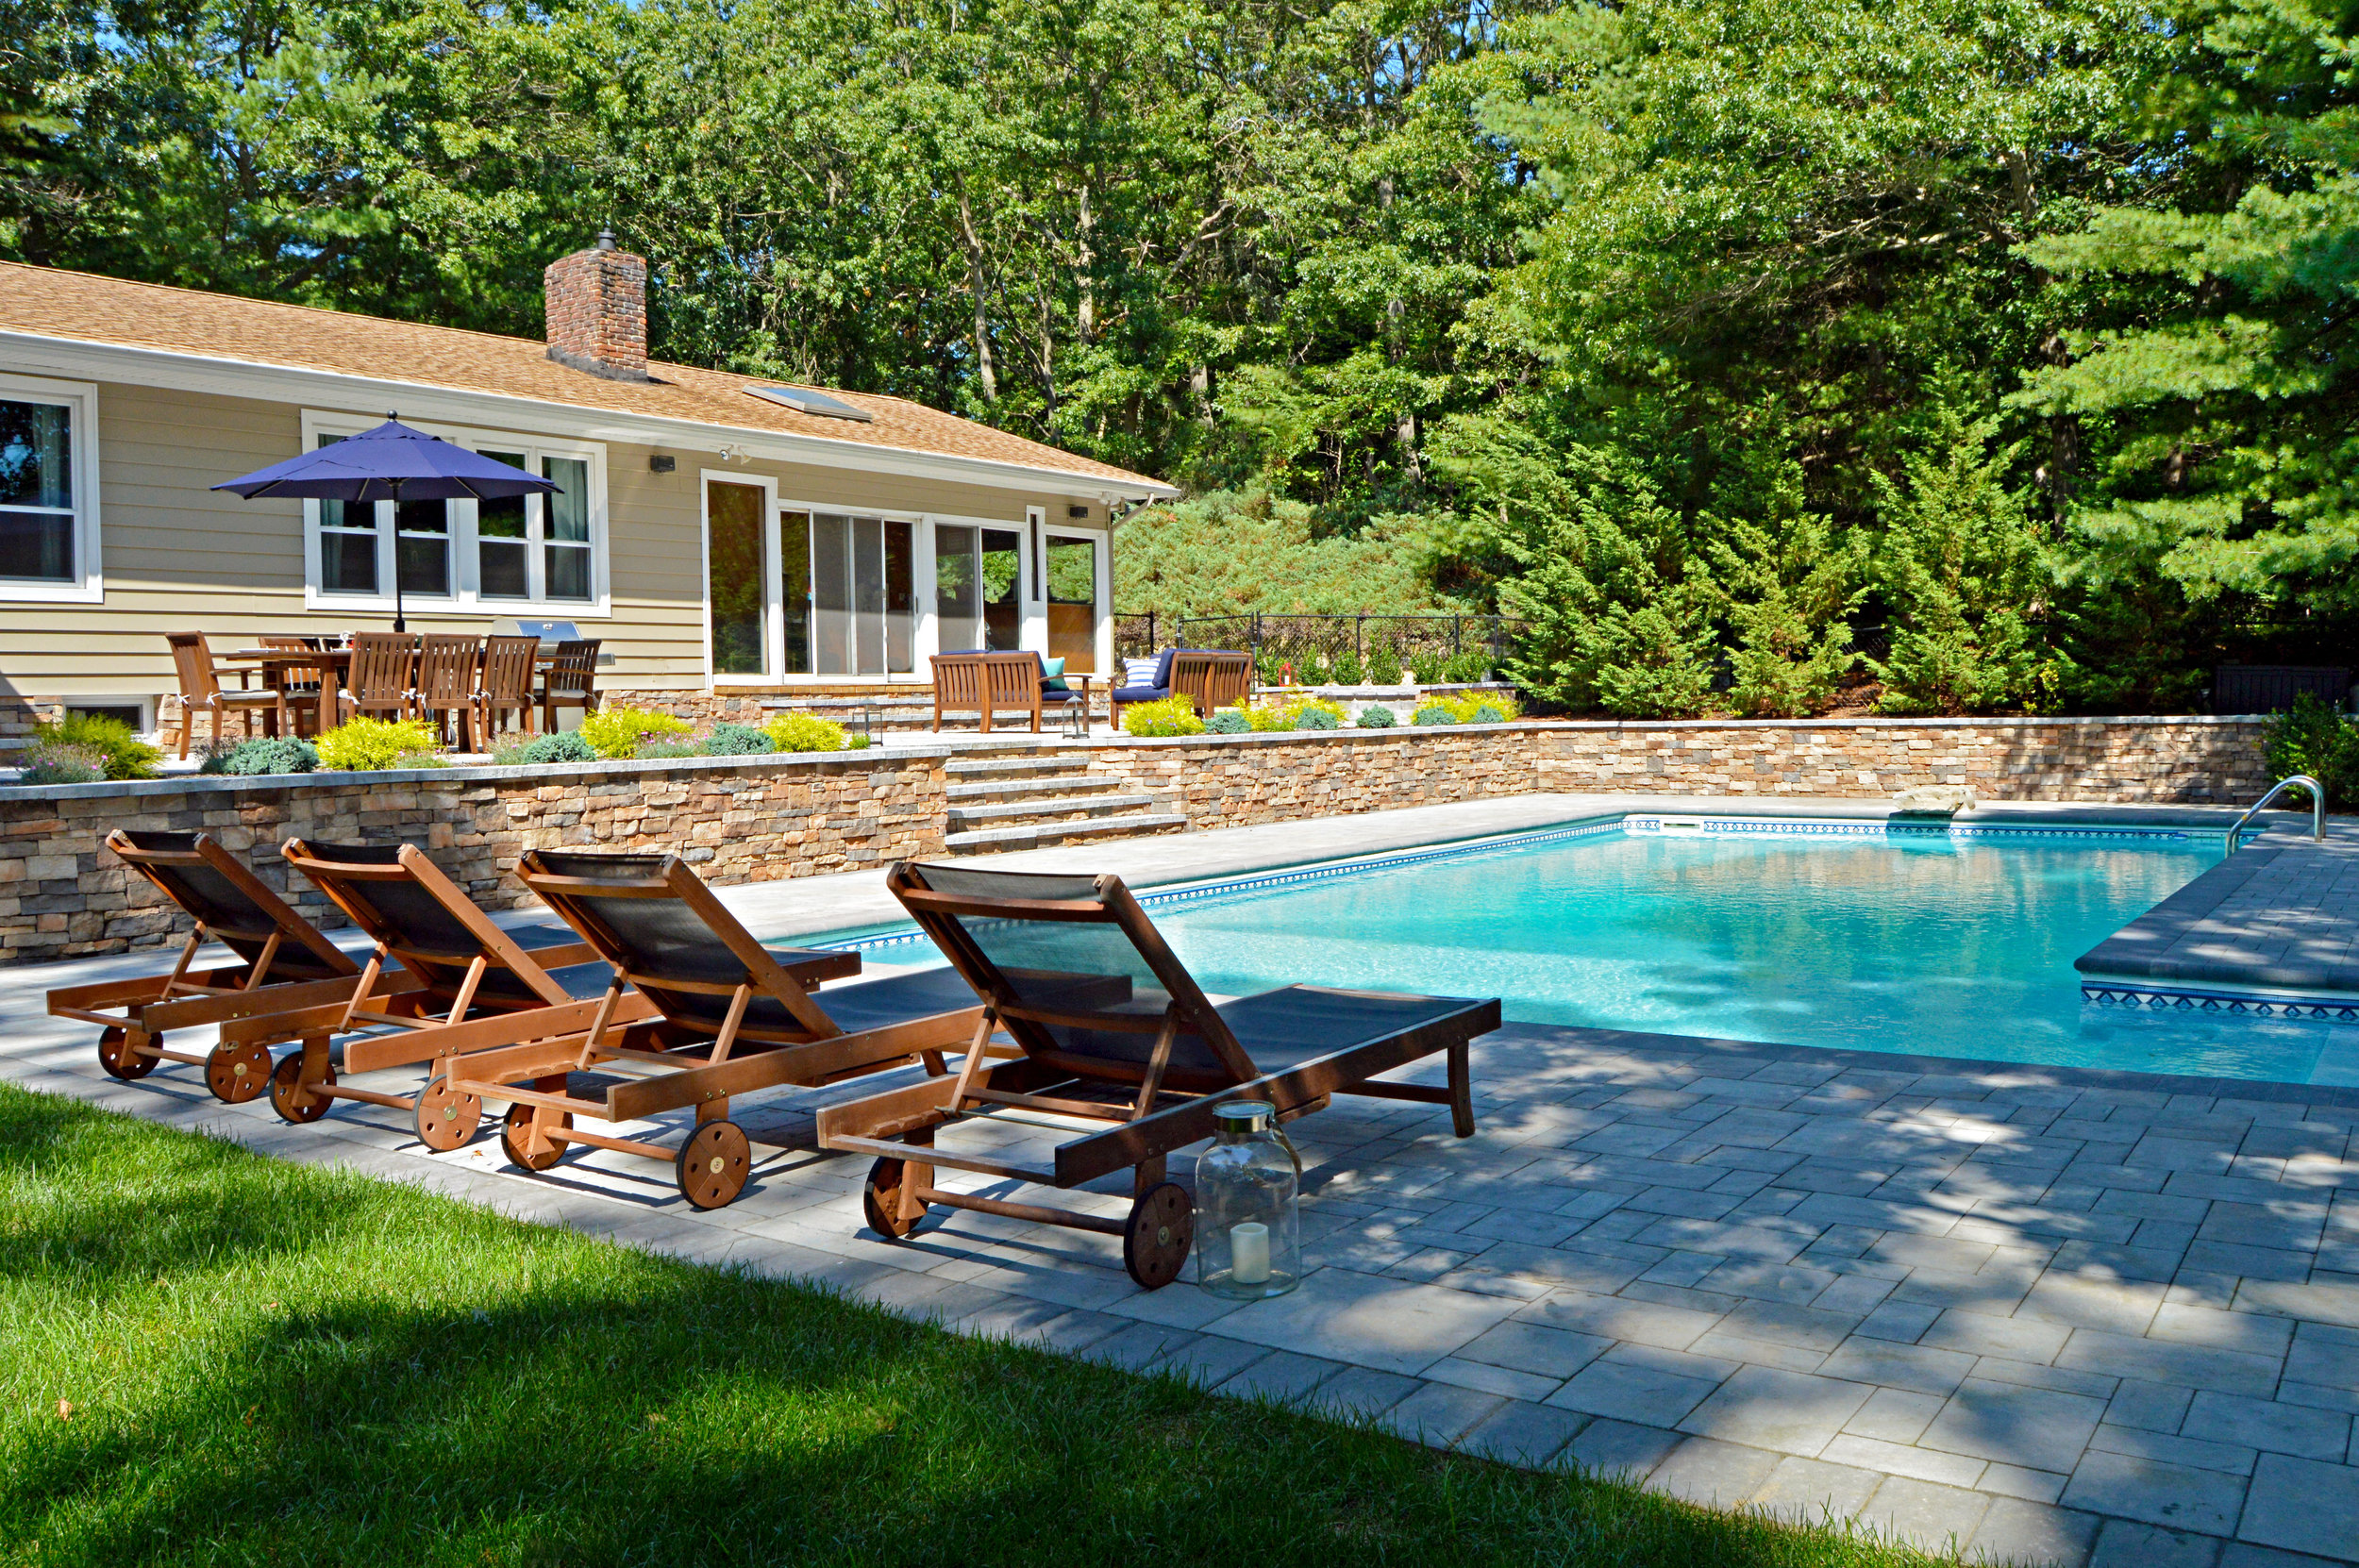 Melville, New York landscape company with quality landscape architecture, patios and swimming pool design